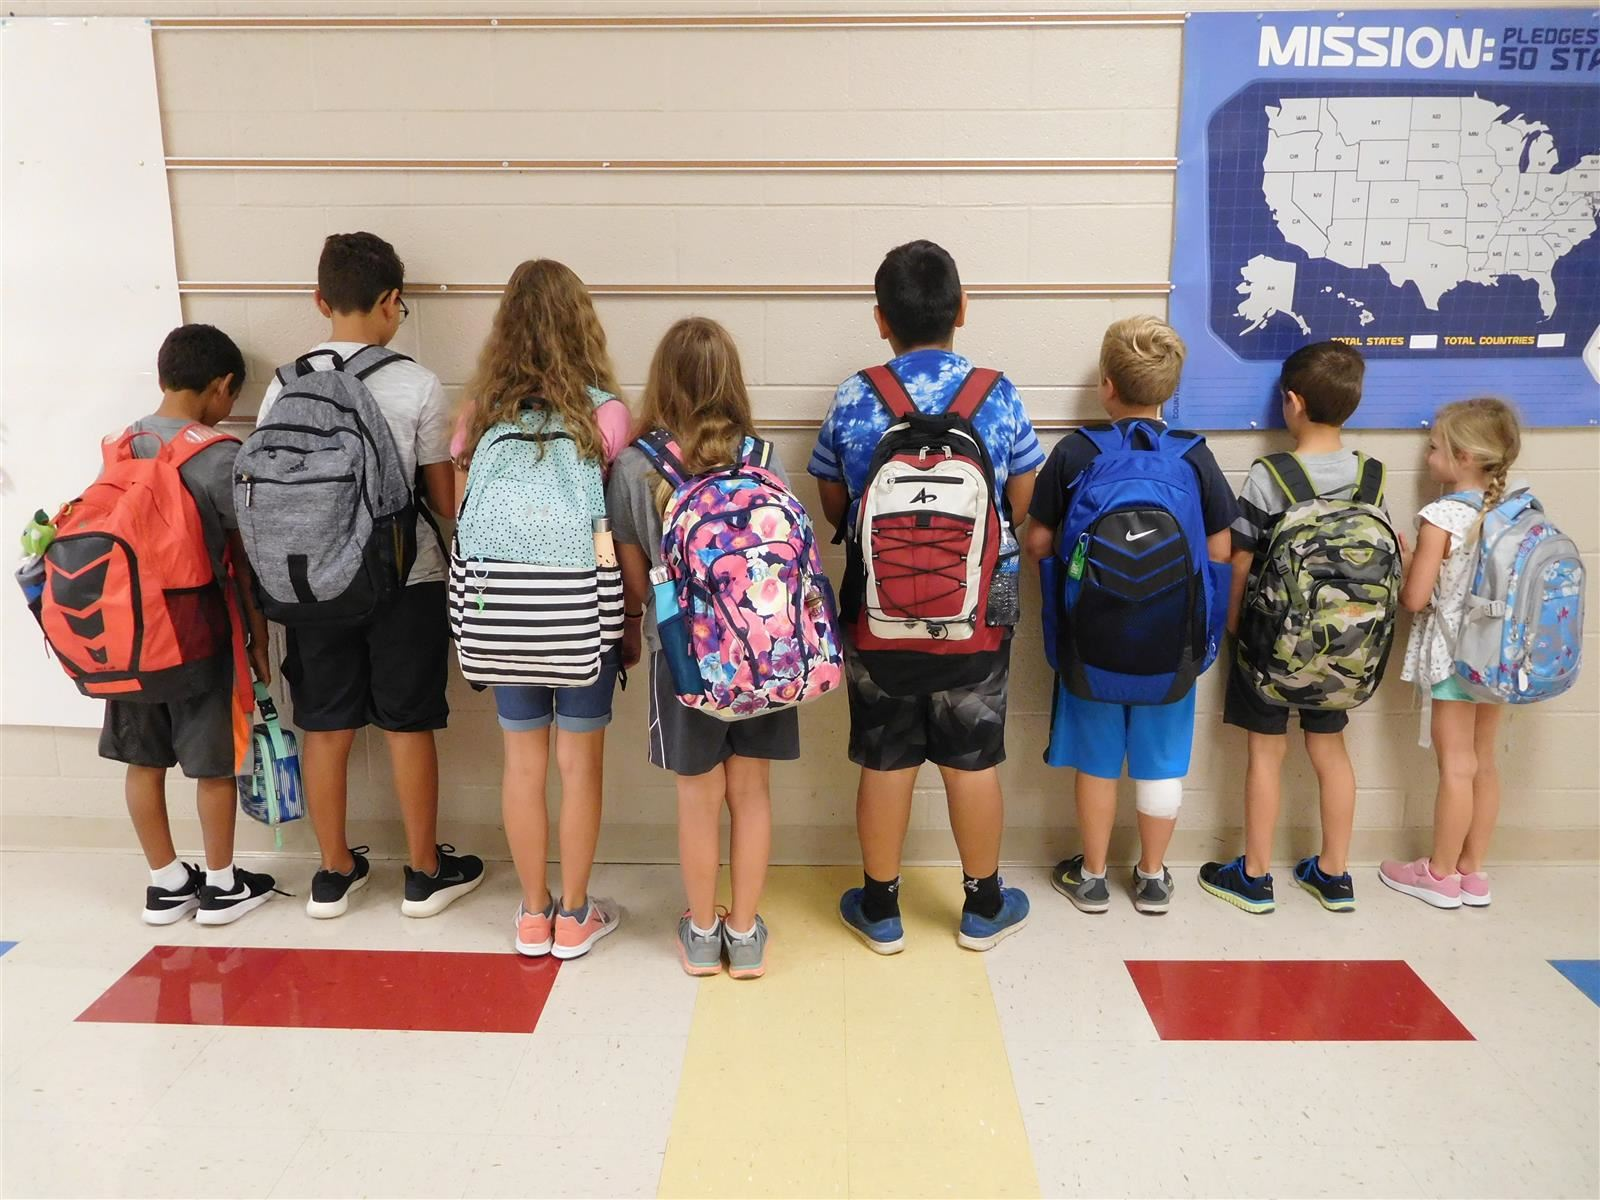 Kids standing facing wall with backpacks showing